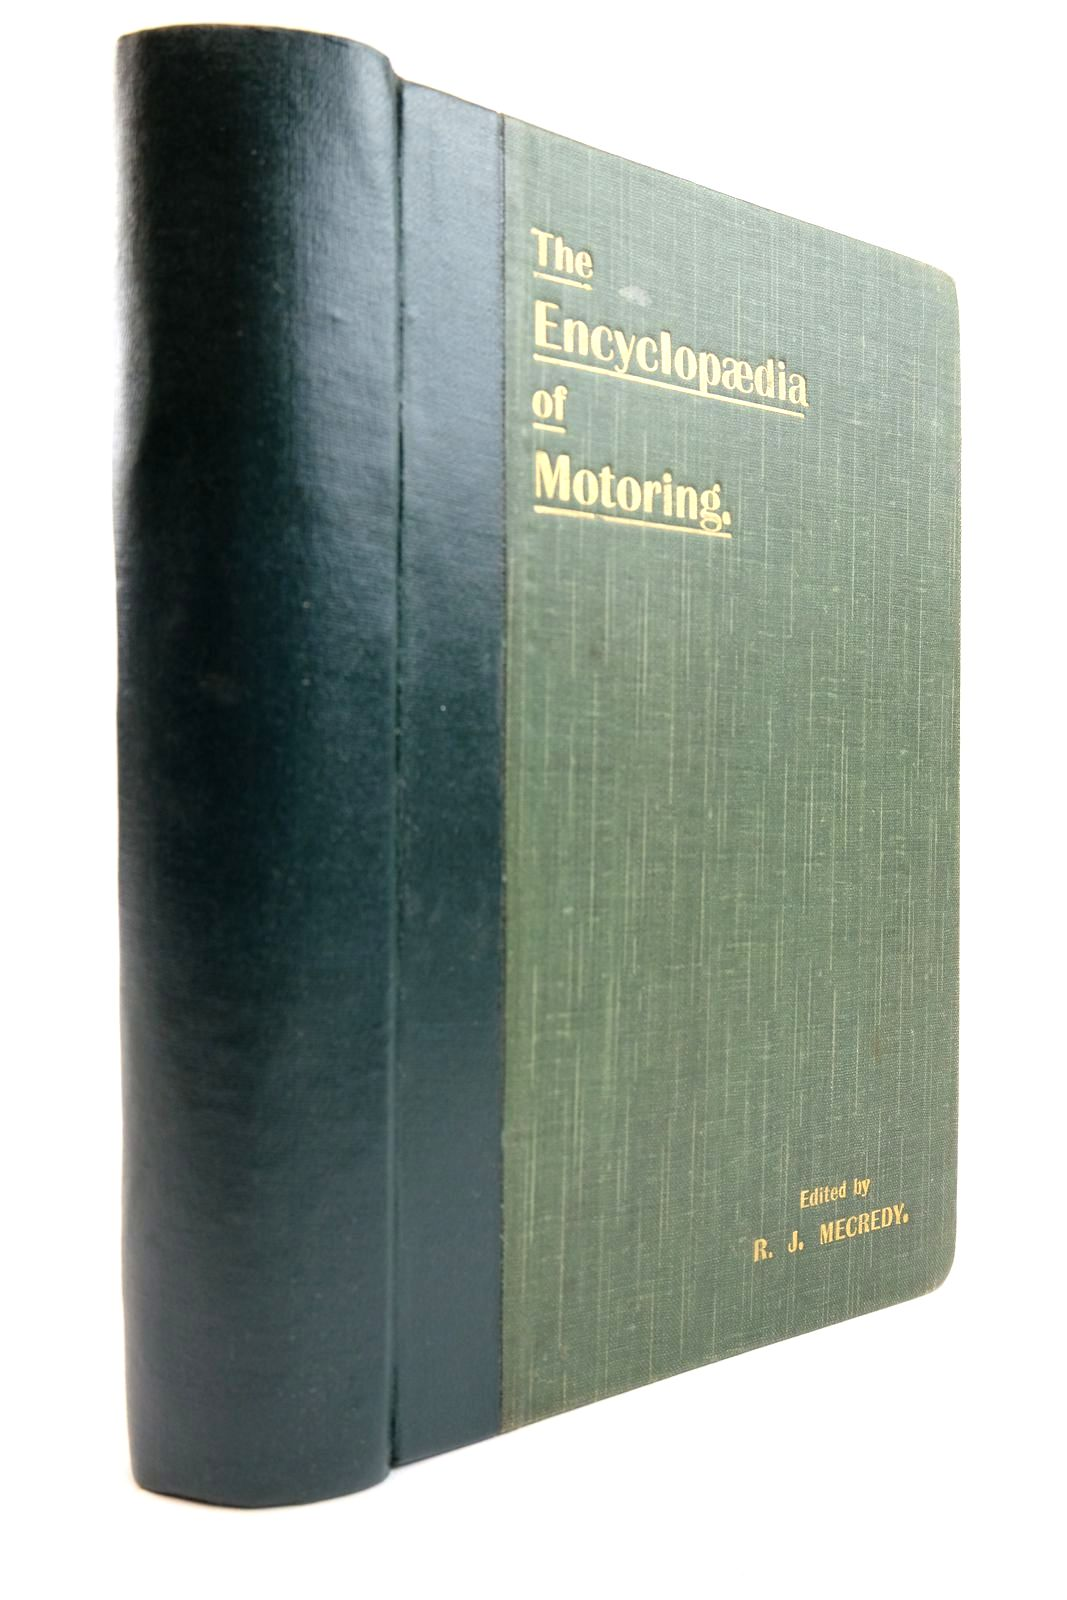 Photo of THE ENCYCLOPAEDIA OF MOTORING written by Mecredy, R.J. published by Mecredy, Percy & Co. Ltd. (STOCK CODE: 2133873)  for sale by Stella & Rose's Books